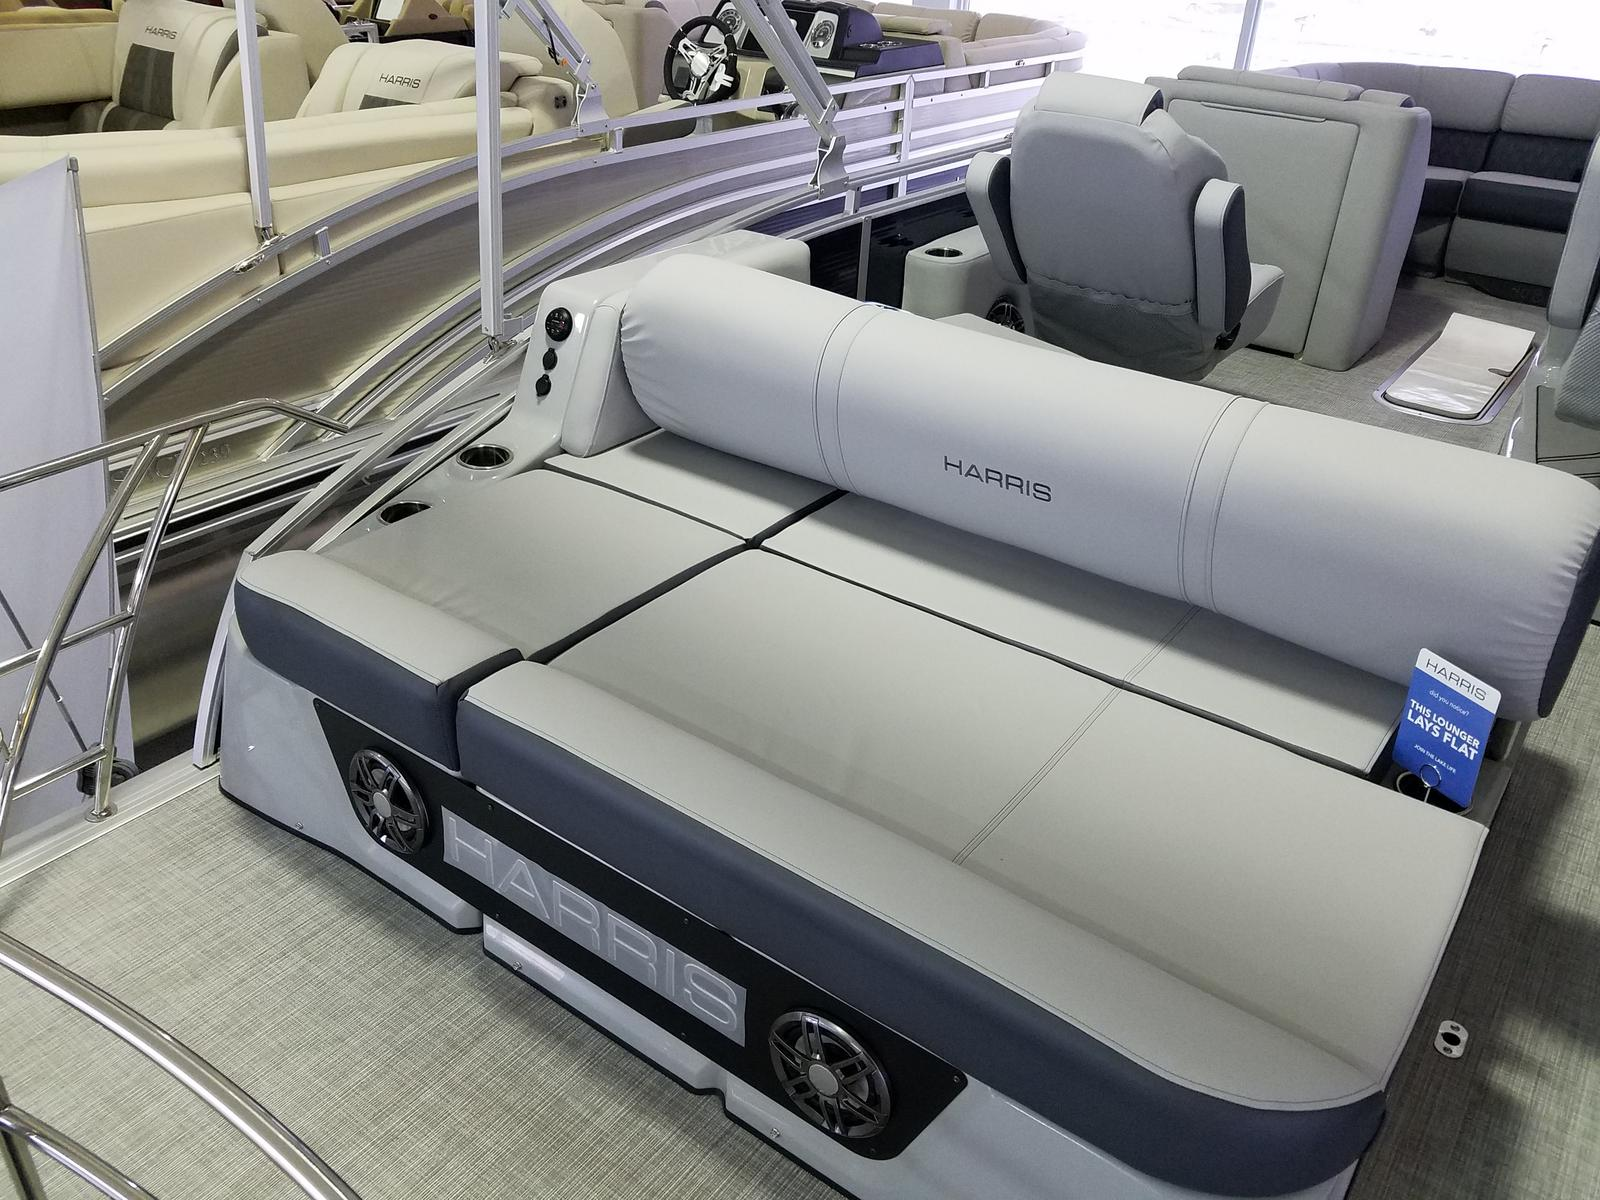 2021 Harris boat for sale, model of the boat is Solstice 230 & Image # 2 of 16